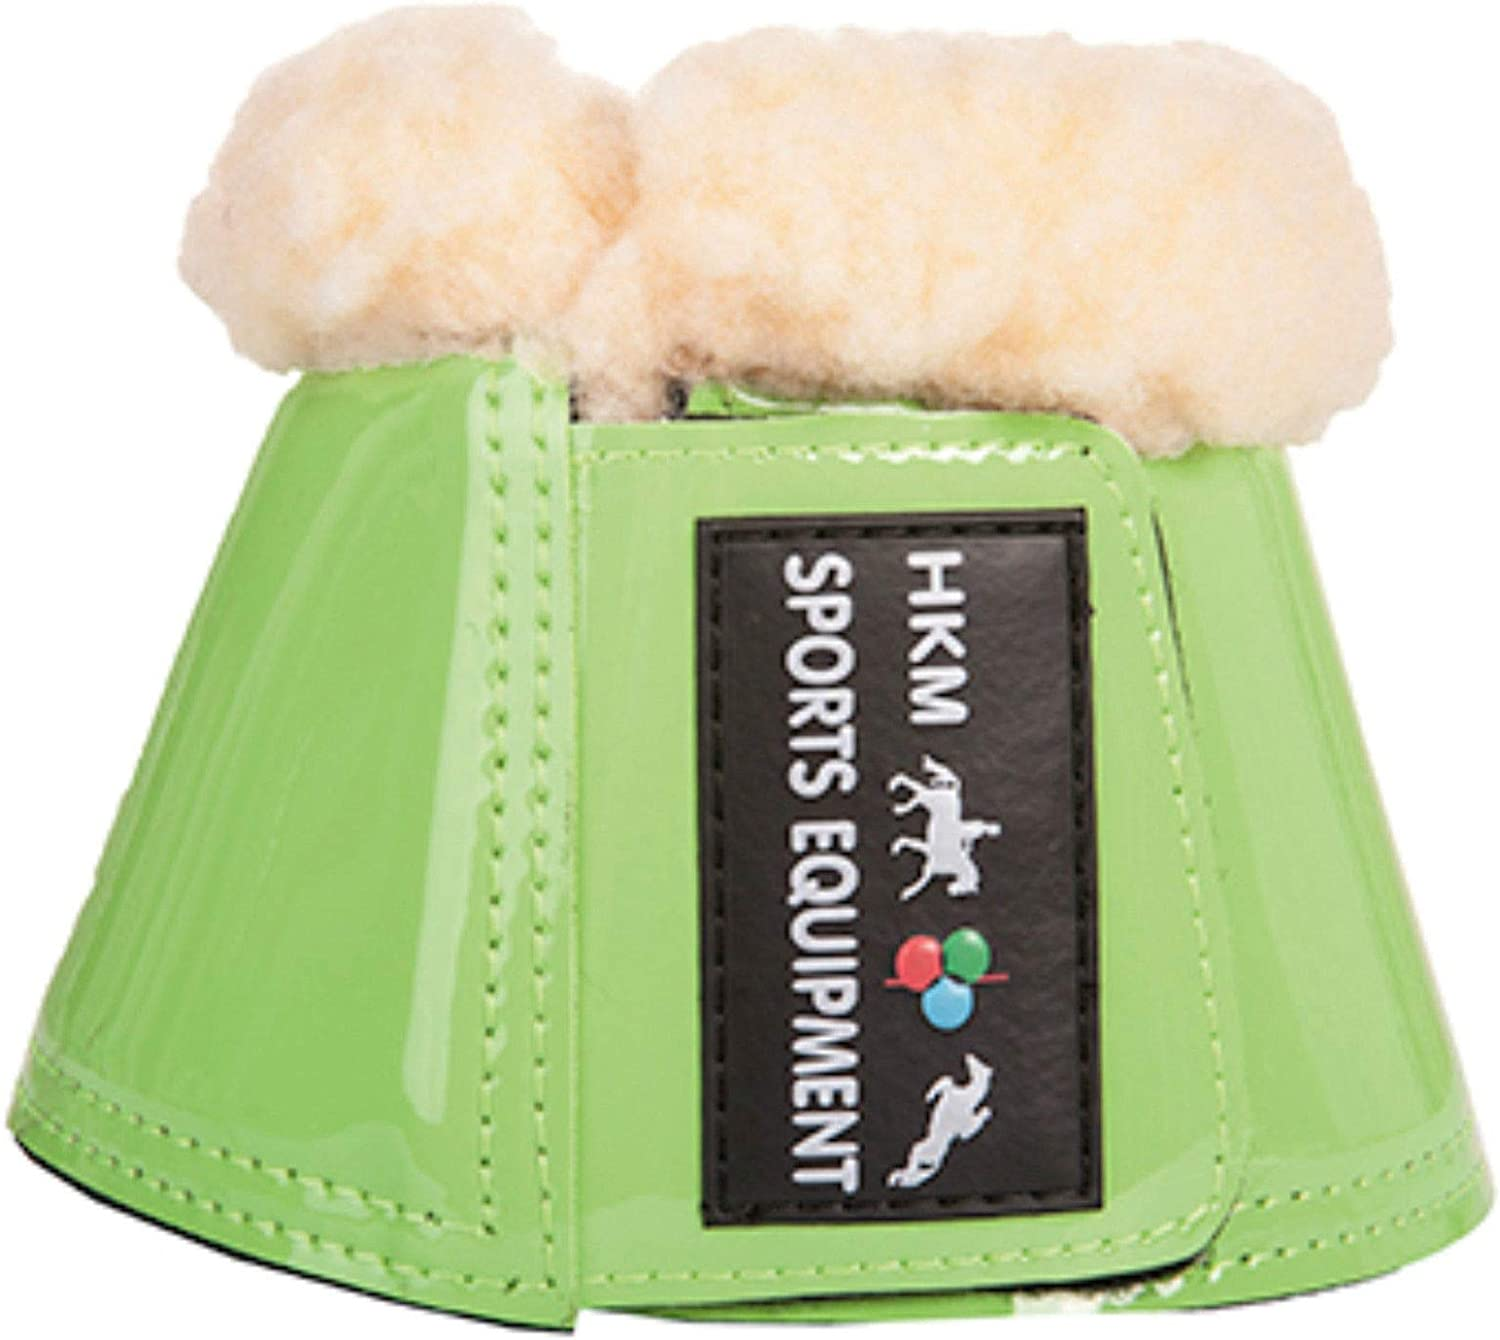 HKM Comfort 41905803.0667 Max 47% OFF Bell Boots with Padding Green Max 75% OFF Neon